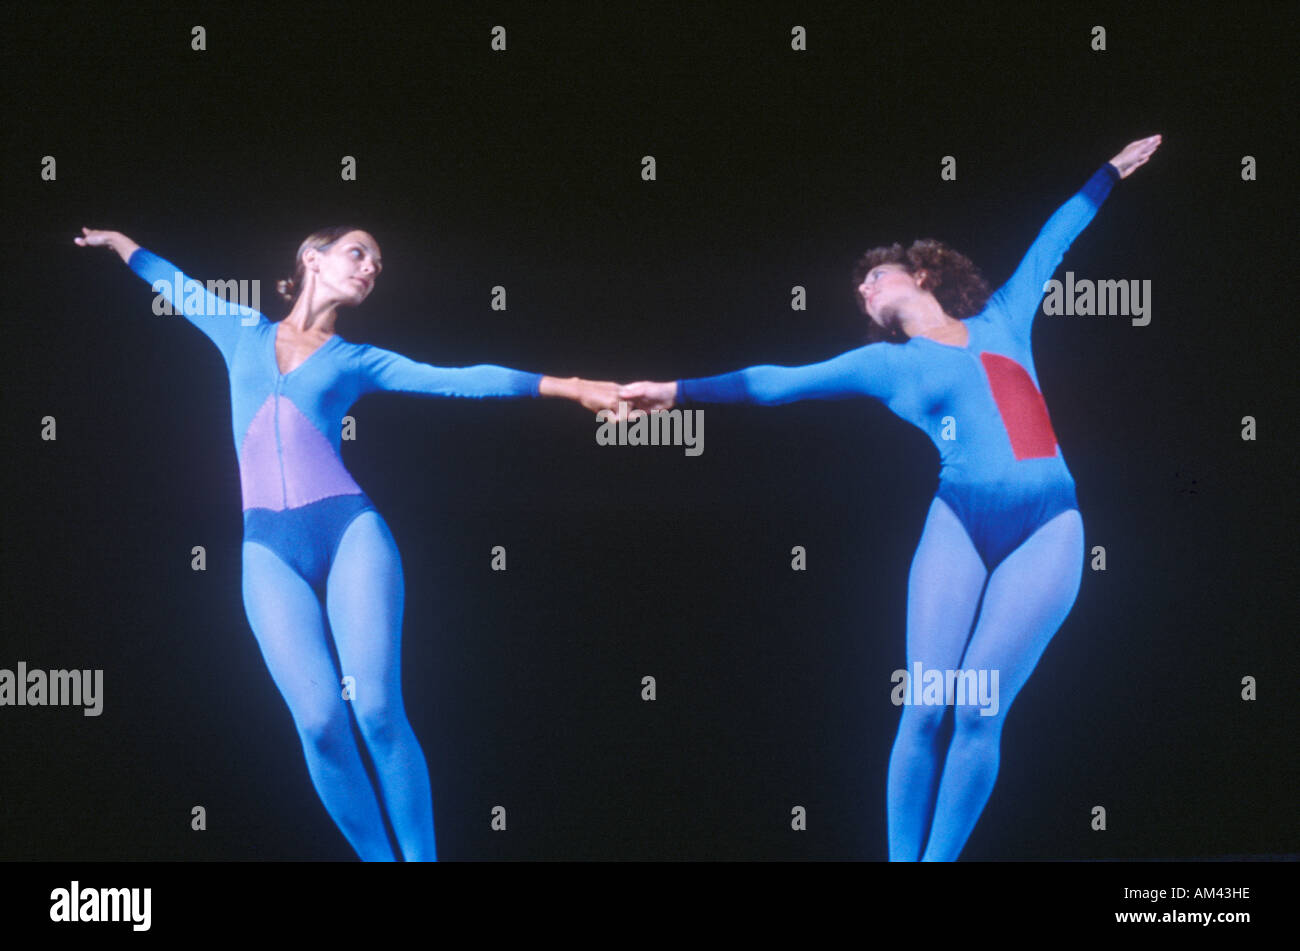 Two dancers stretching on a darkened stage - Stock Image